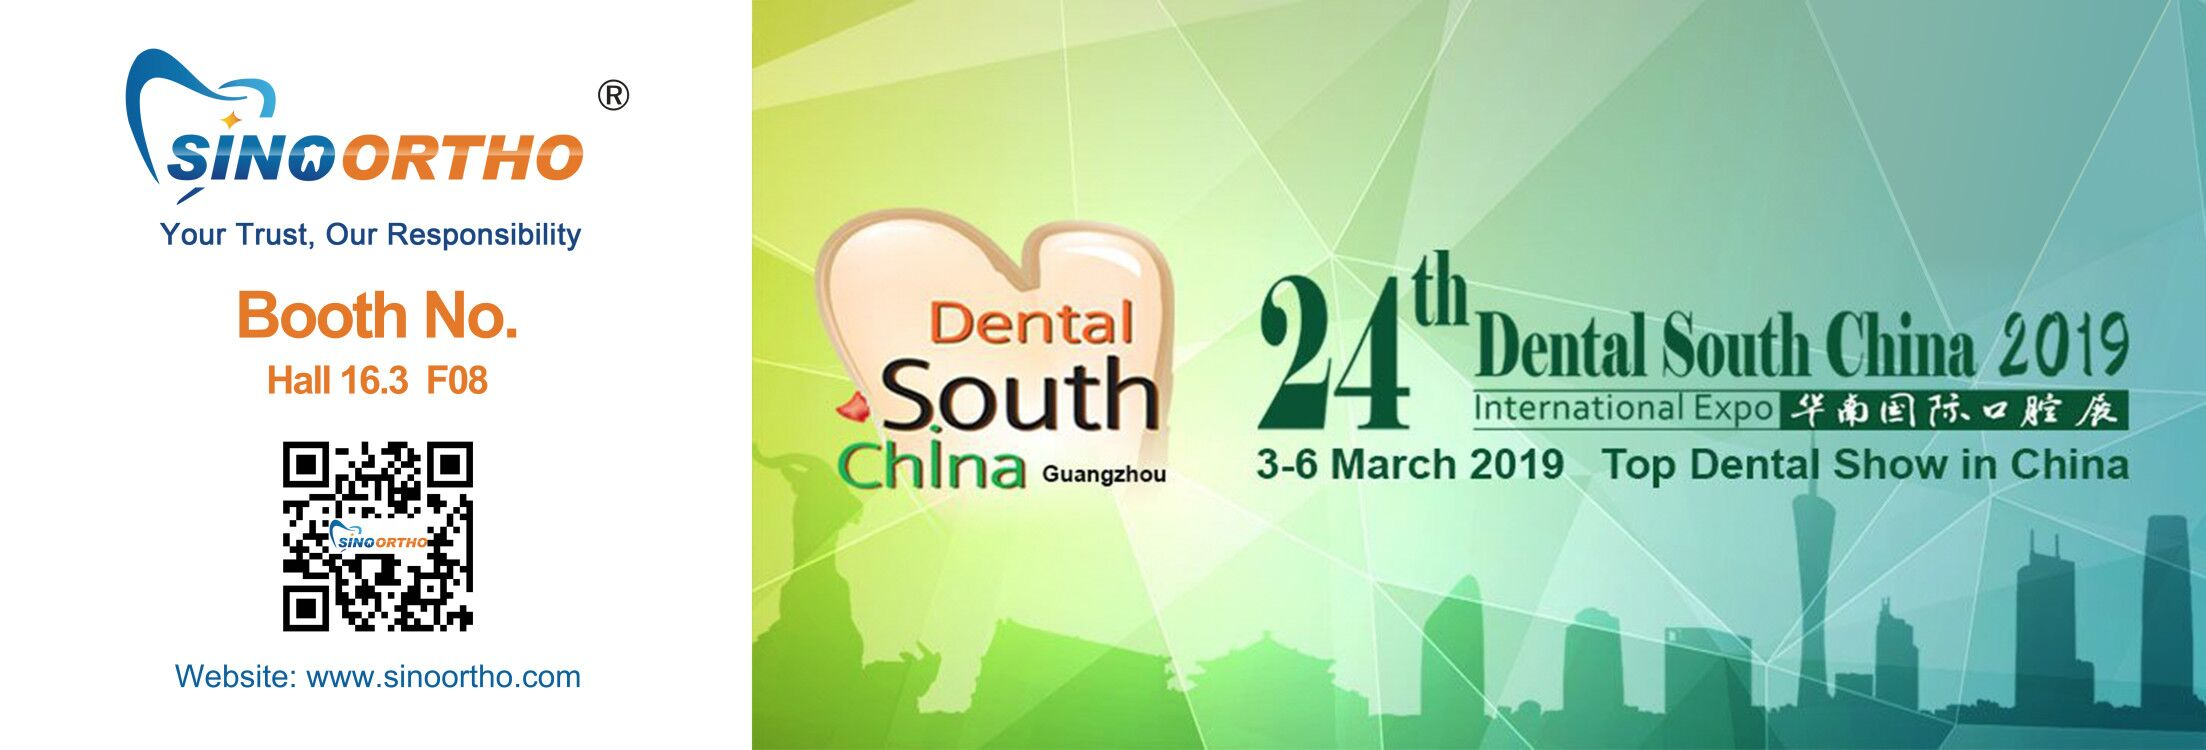 Dental South China